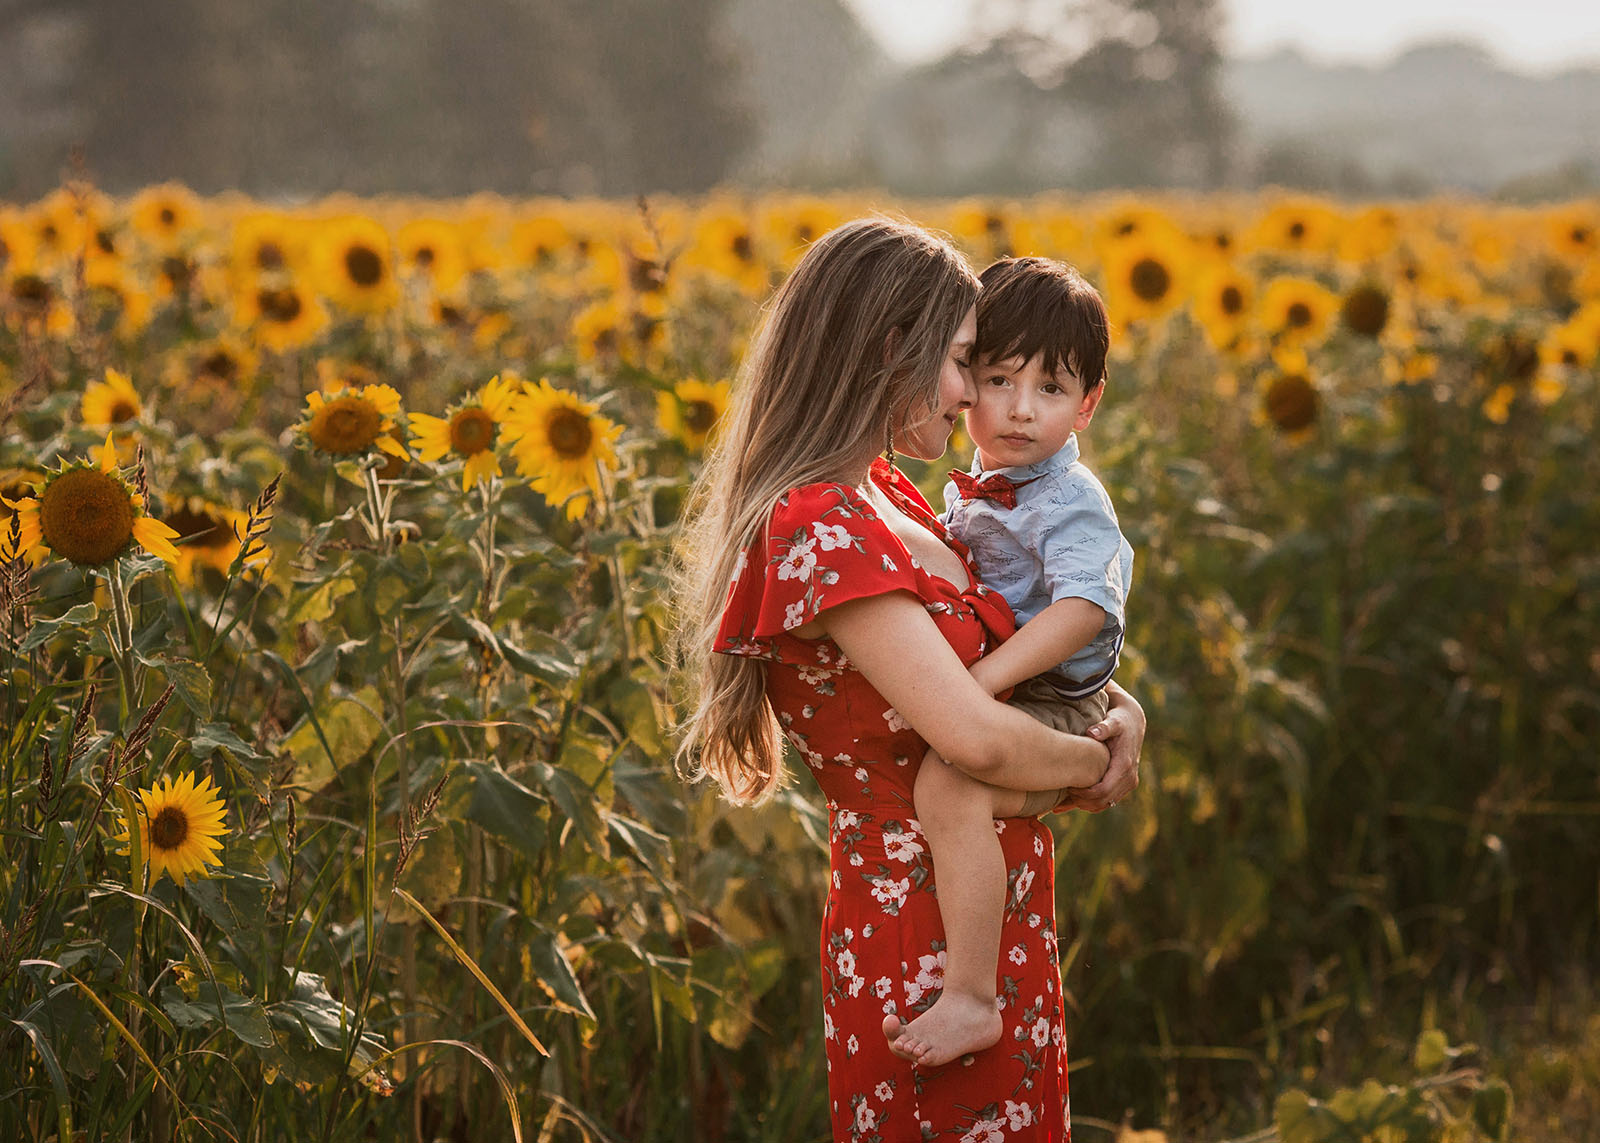 Mommy and me session taken at sunflower field in Cleveland Ohio by top Cleveland photographer Chelsey Hill Photography